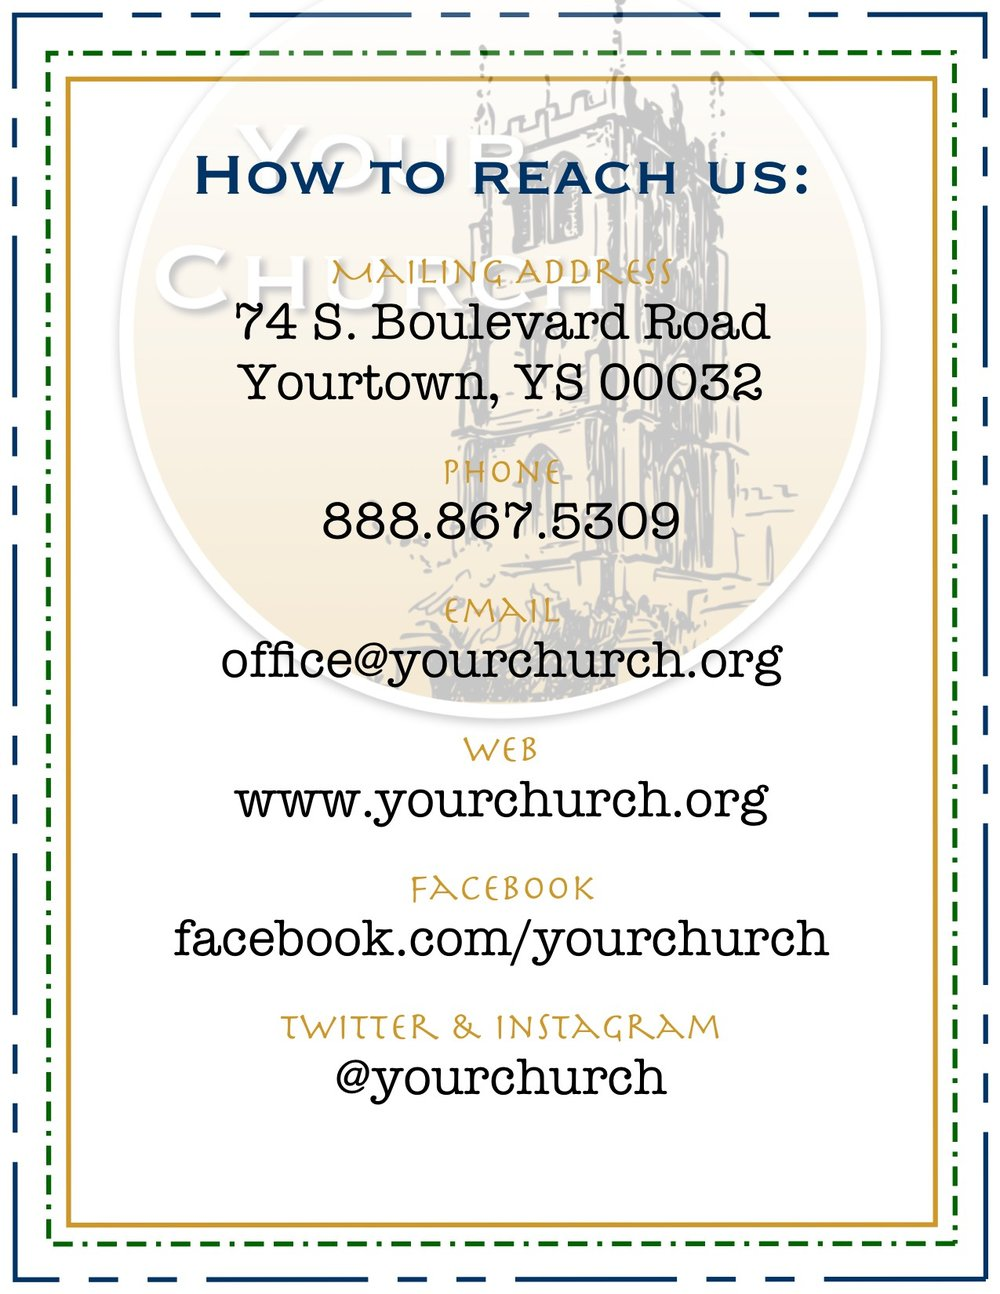 YourChurch Contact Information